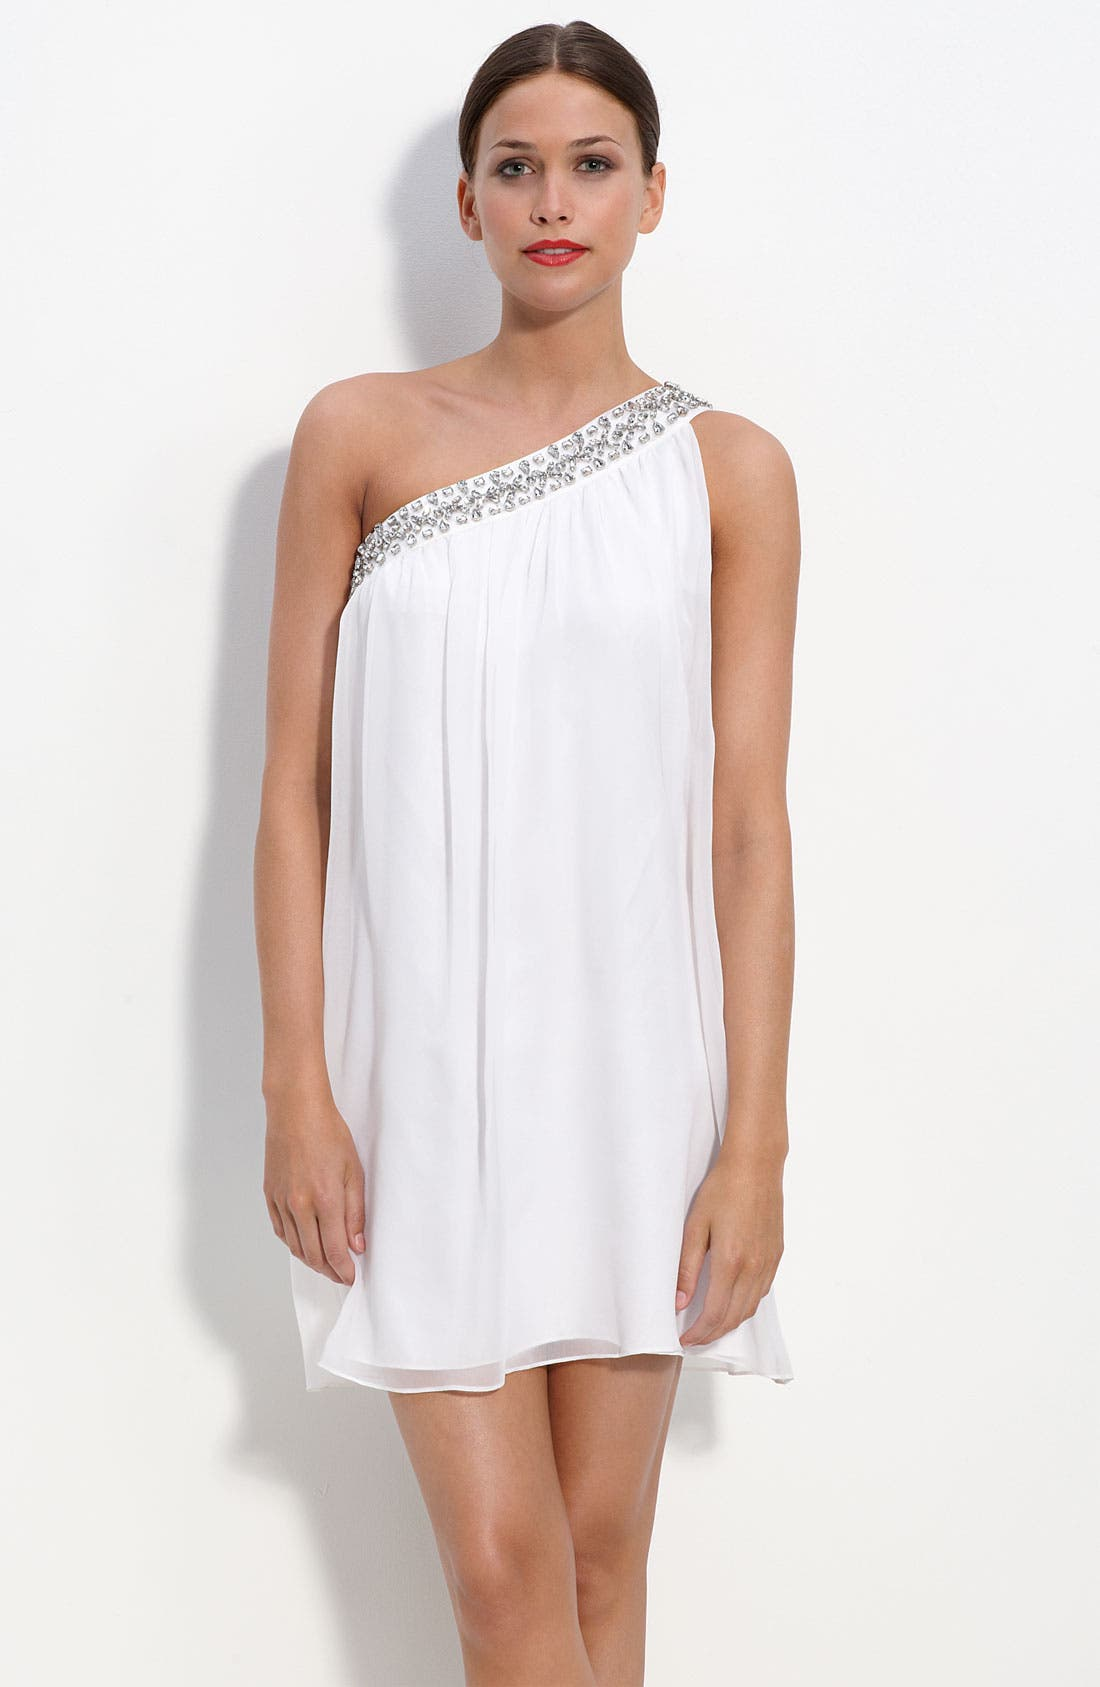 Alternate Image 1 Selected - Calvin Klein One Shoulder Chiffon Dress with Rhinestone Trim